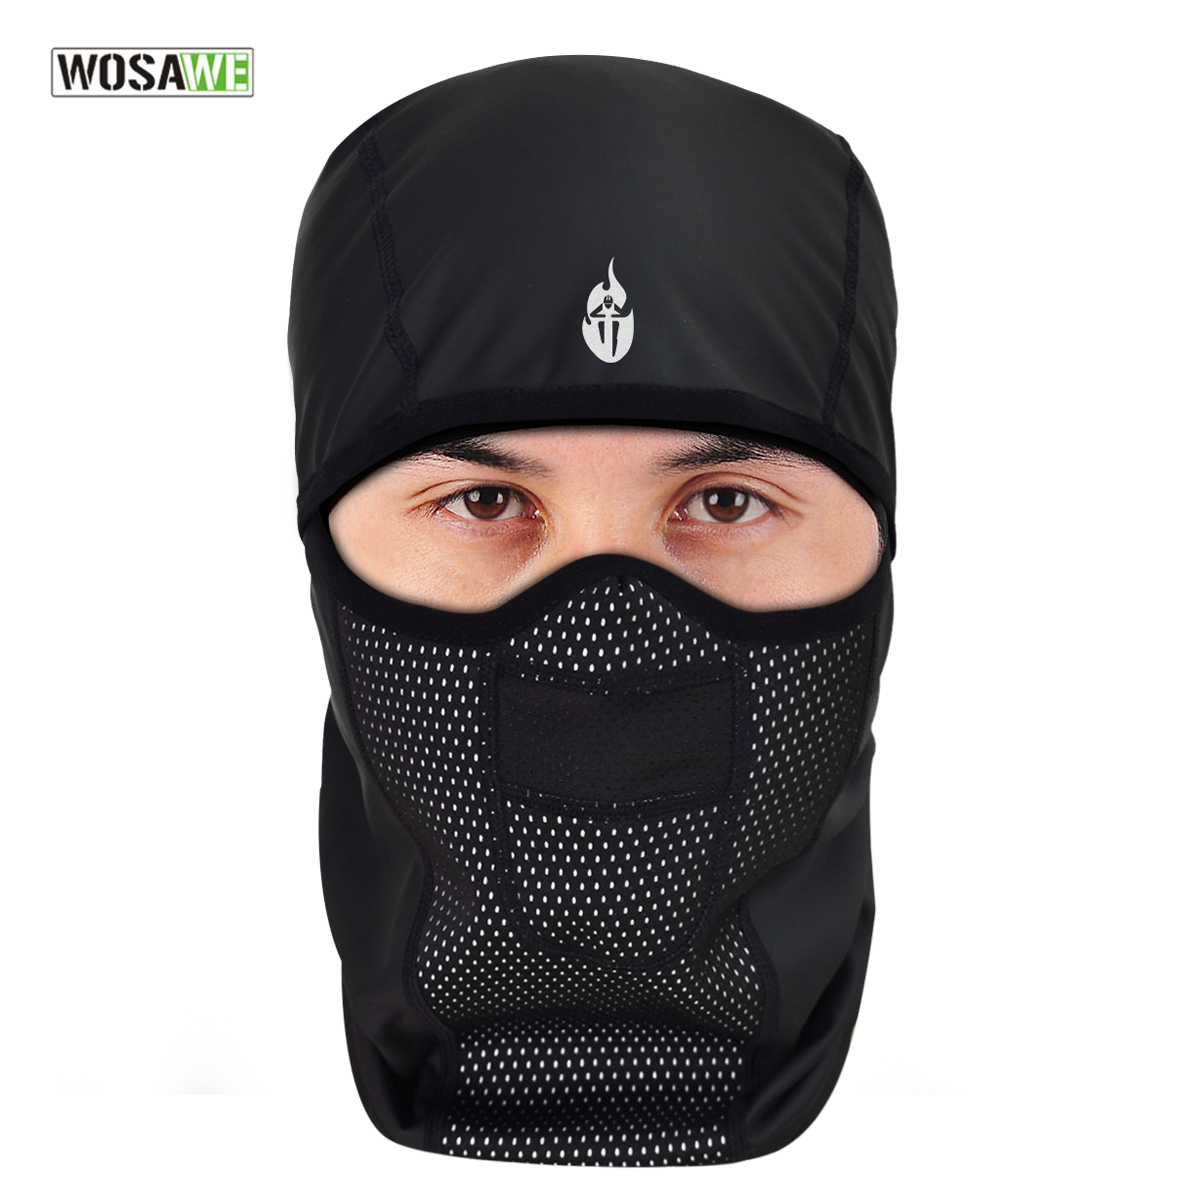 WOSAWE Winter Cycling Face Mask Fleece Thermal Windproof Bike Balaclava Cycling Skiing Fishing Skating Hat Headwear long keeper 10pc lot balaclava winter men women skullies face neck mask cap thermal winter cyling bike riding running hat